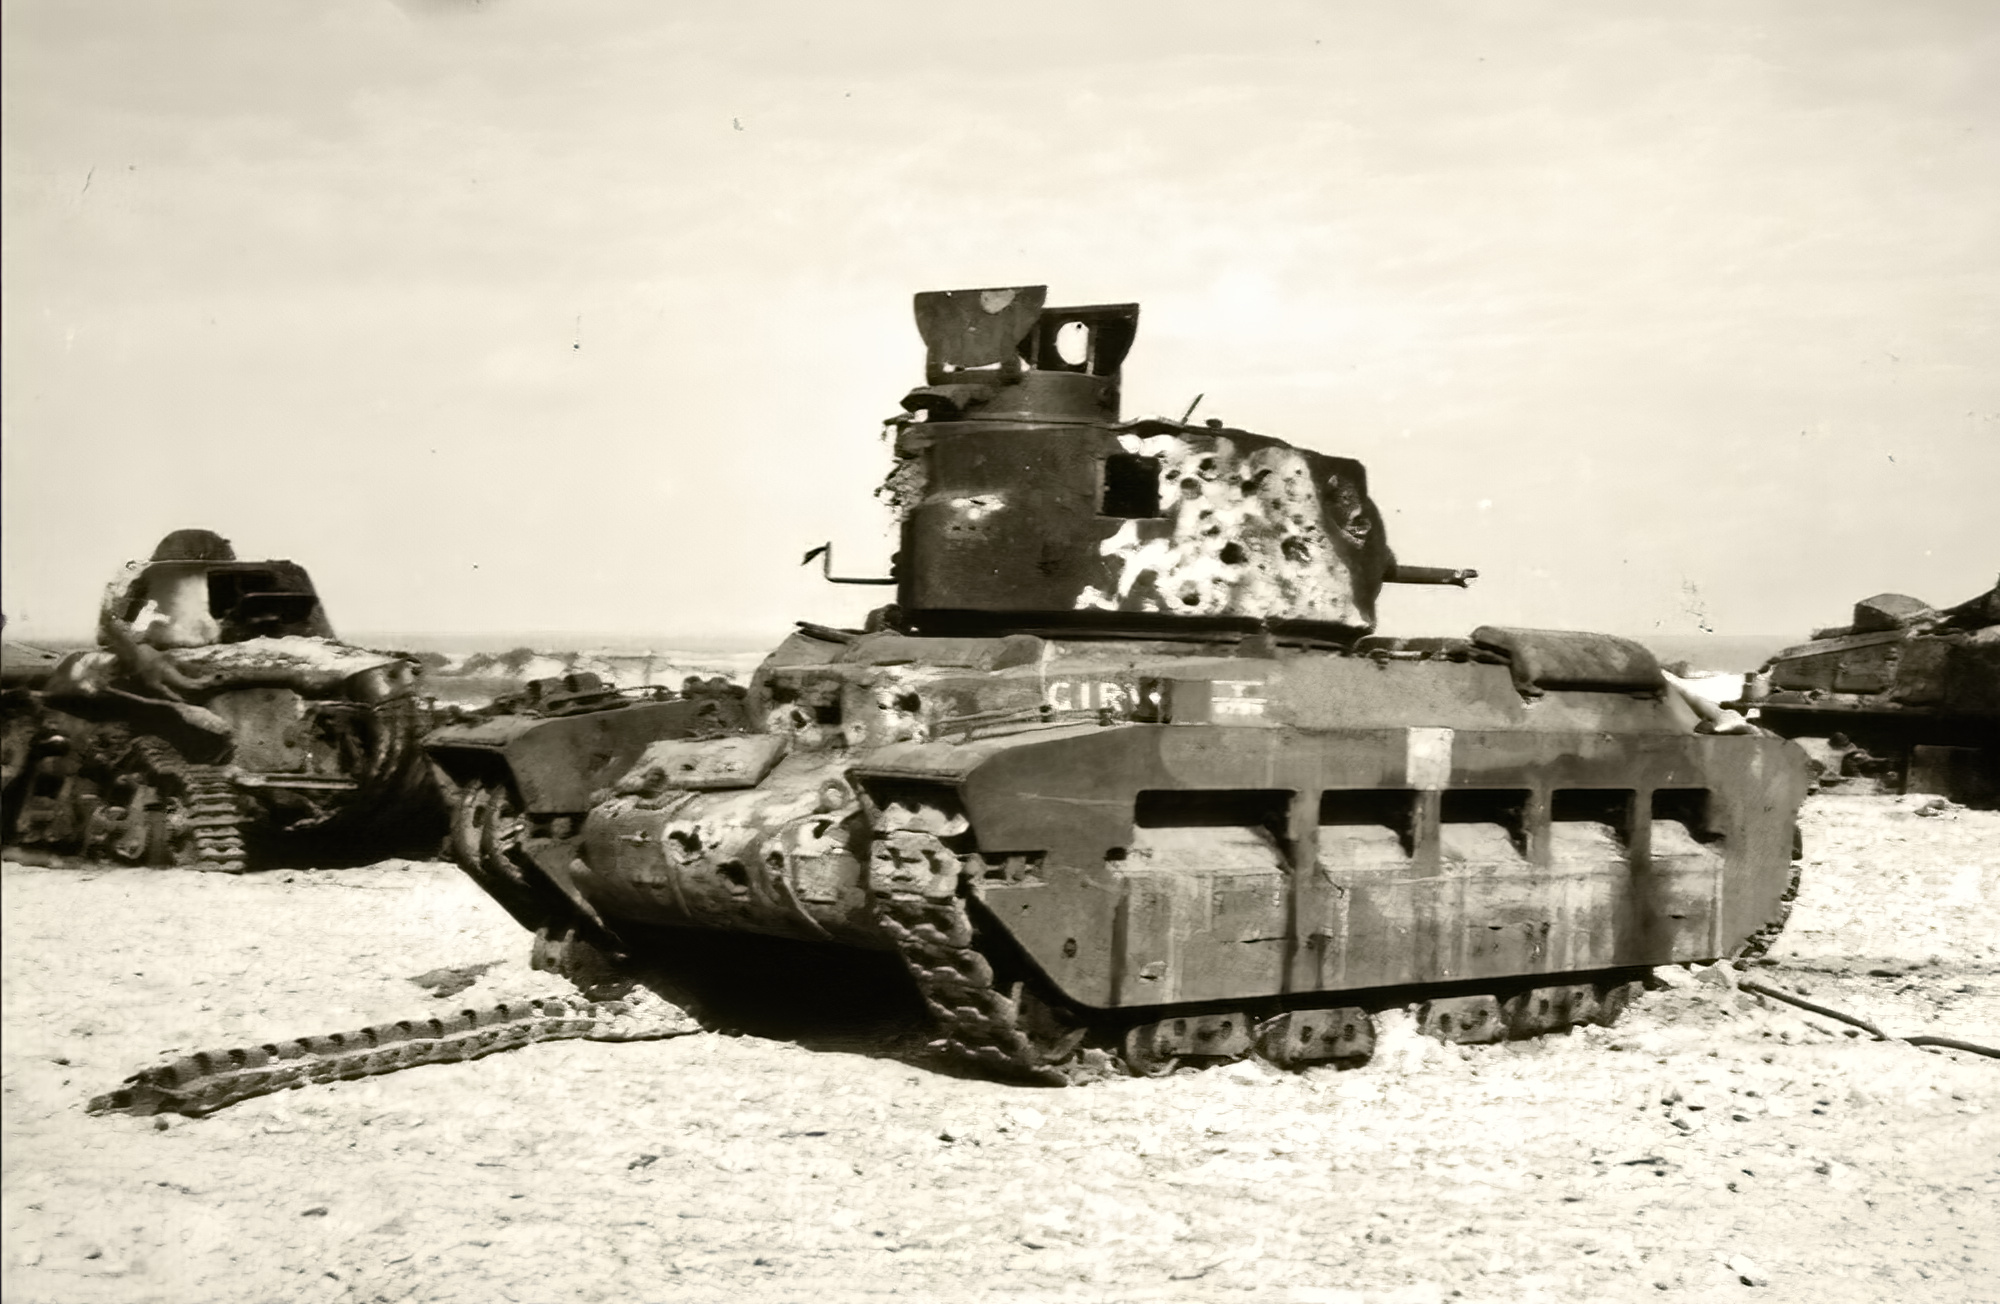 British Matilda abandoned with French Renault R35 during battle of France 1940 ebay 01